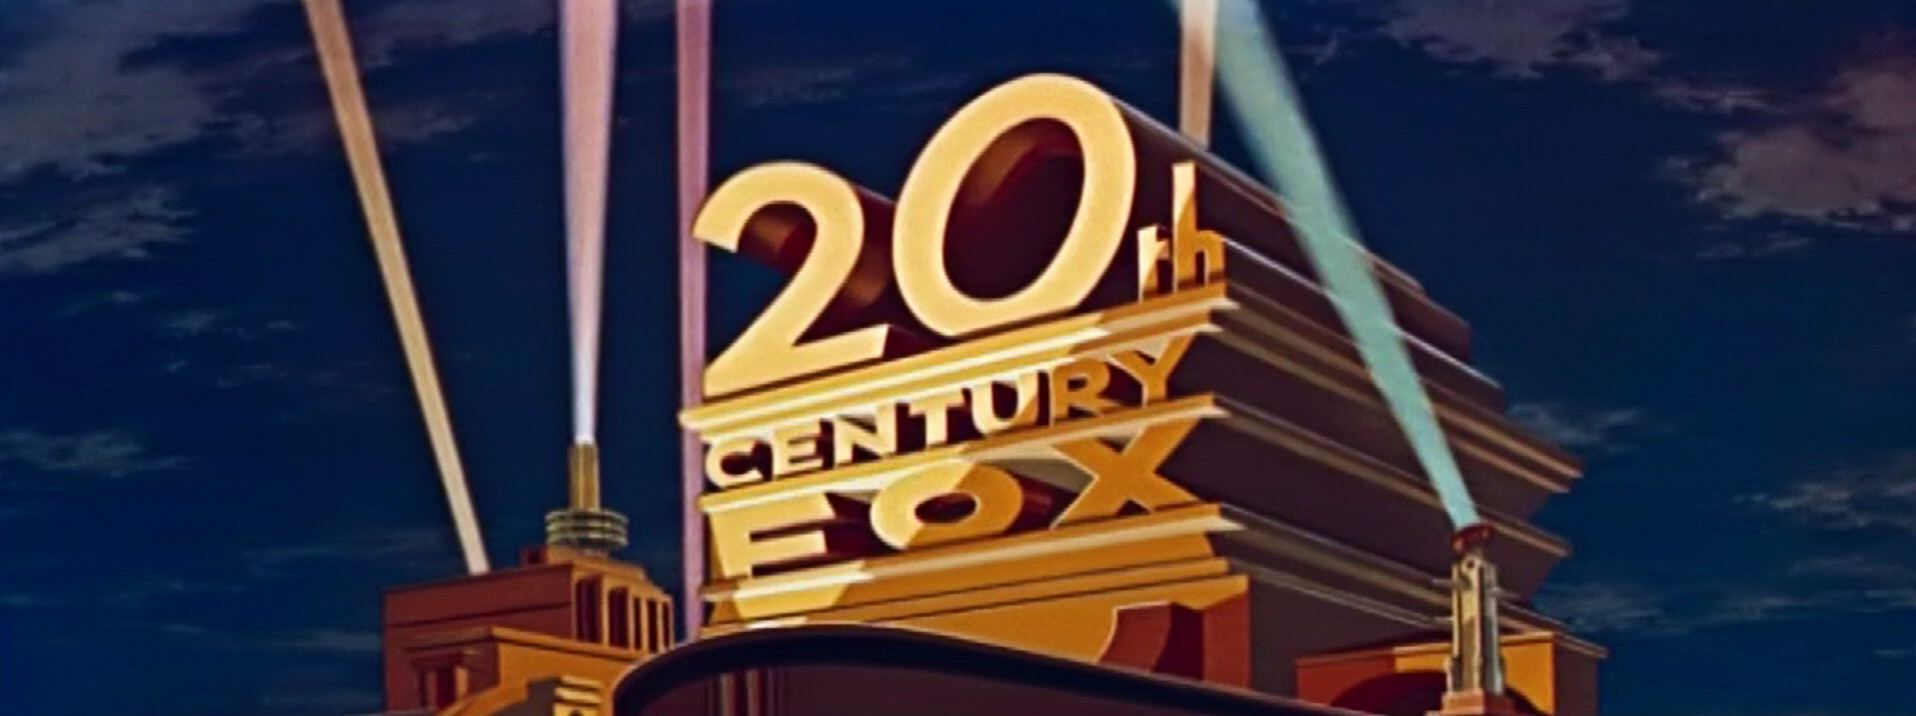 Main title from The Egyptian (1954) (1). 20th Century Fox